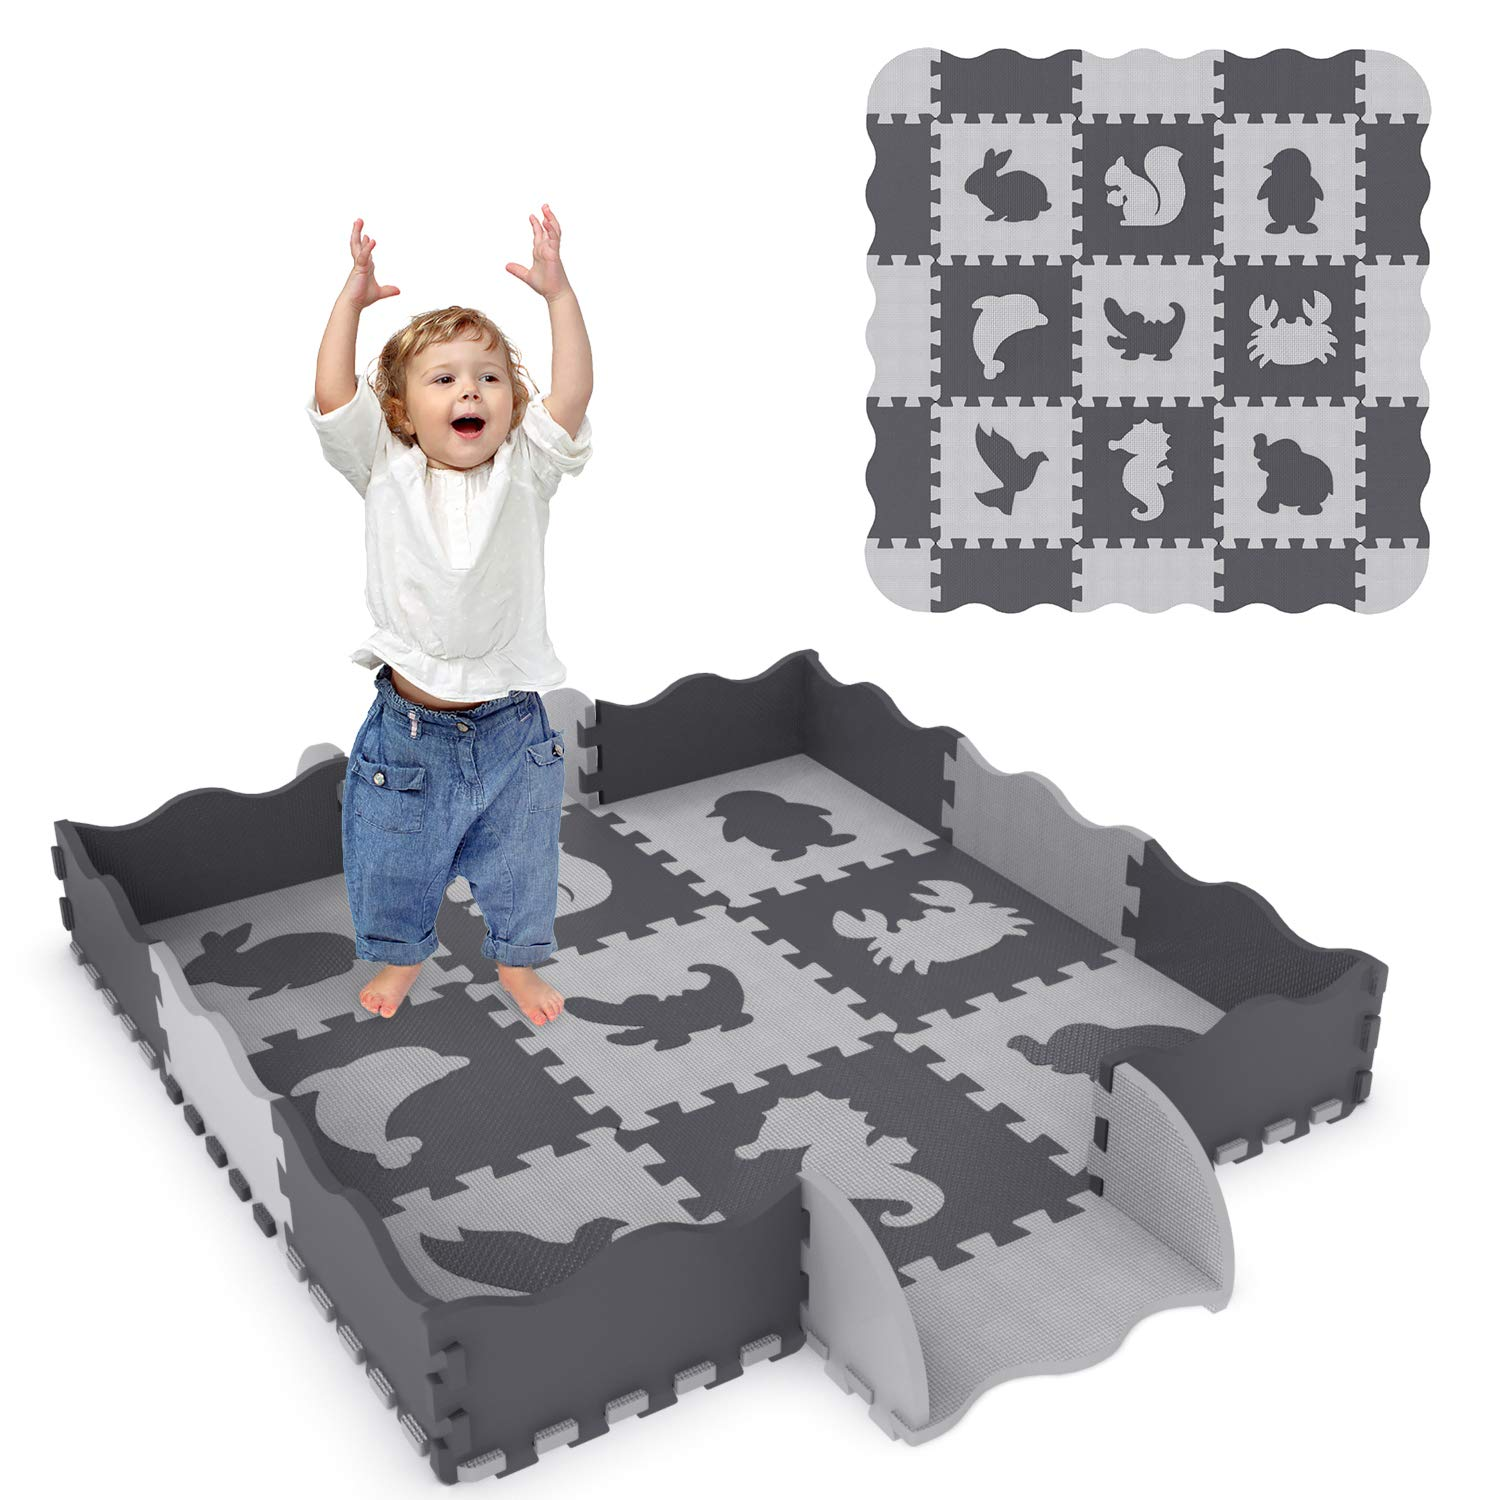 25Pcs Baby Play Mat with Fence in 9 Different Animal Styles, Thick (0.47') Interlocking Foam Floor Tiles, Kids Room Decor Large Mat Thick (0.47) Interlocking Foam Floor Tiles FUN LITTLE TOYS